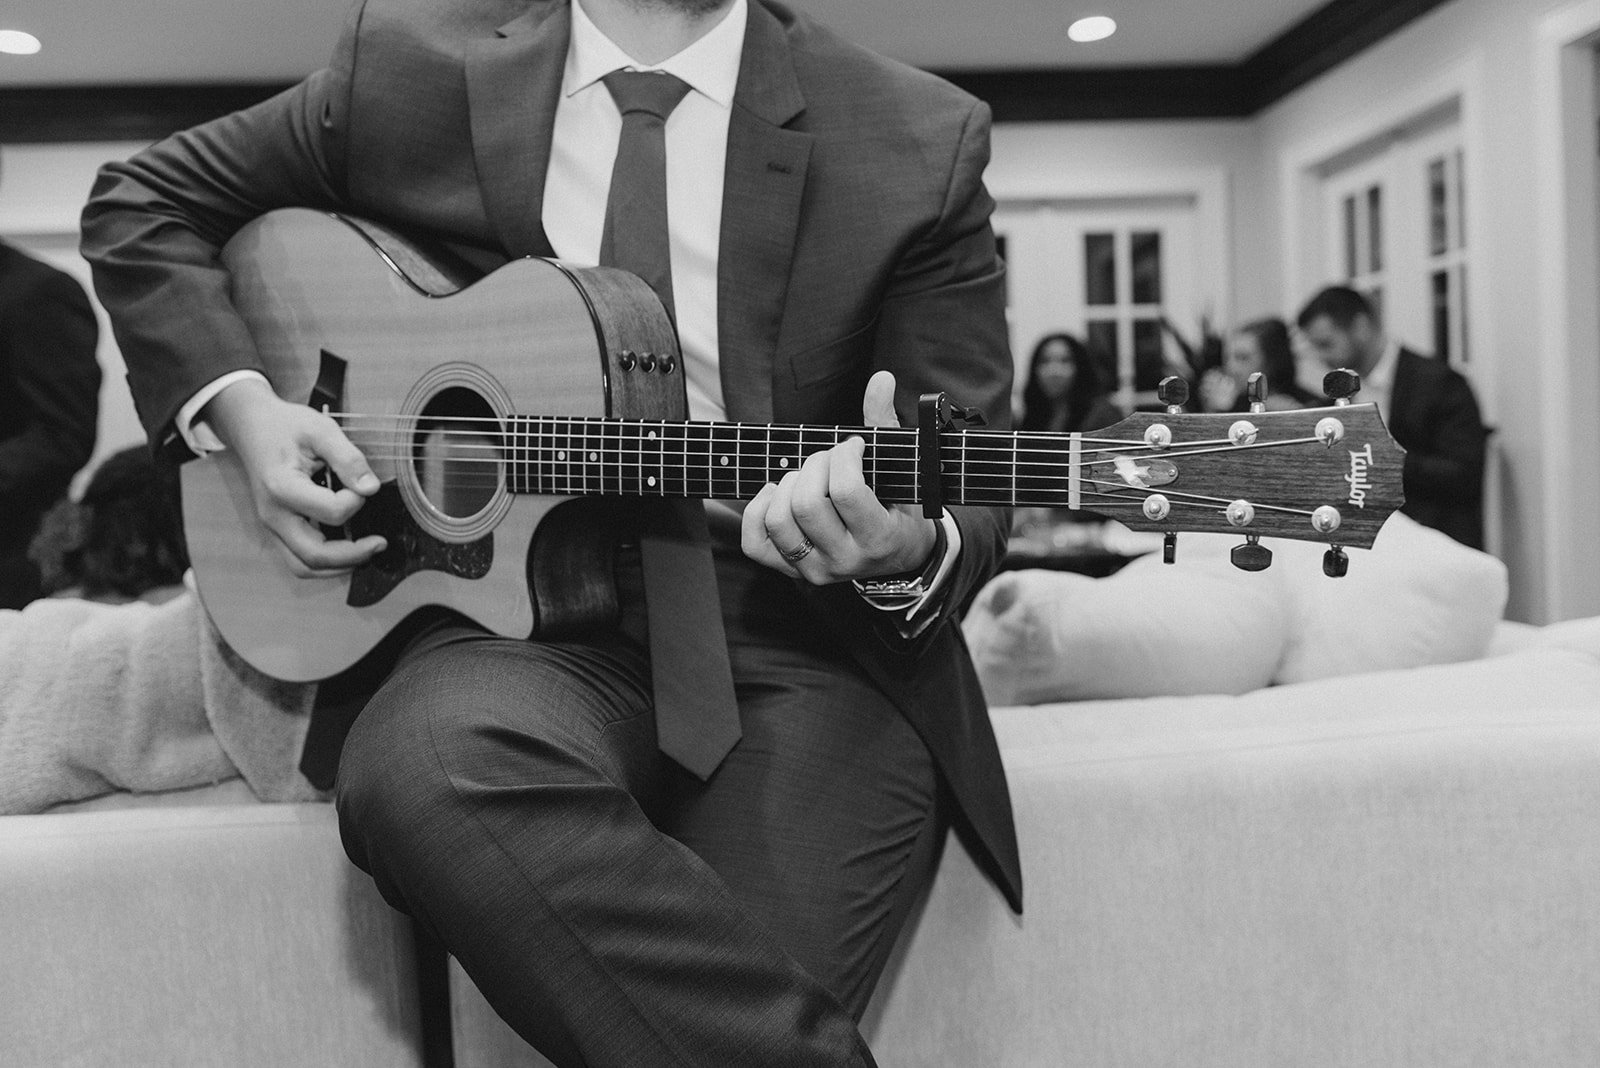 Me playing an acoustic guitar while leaning on a couch